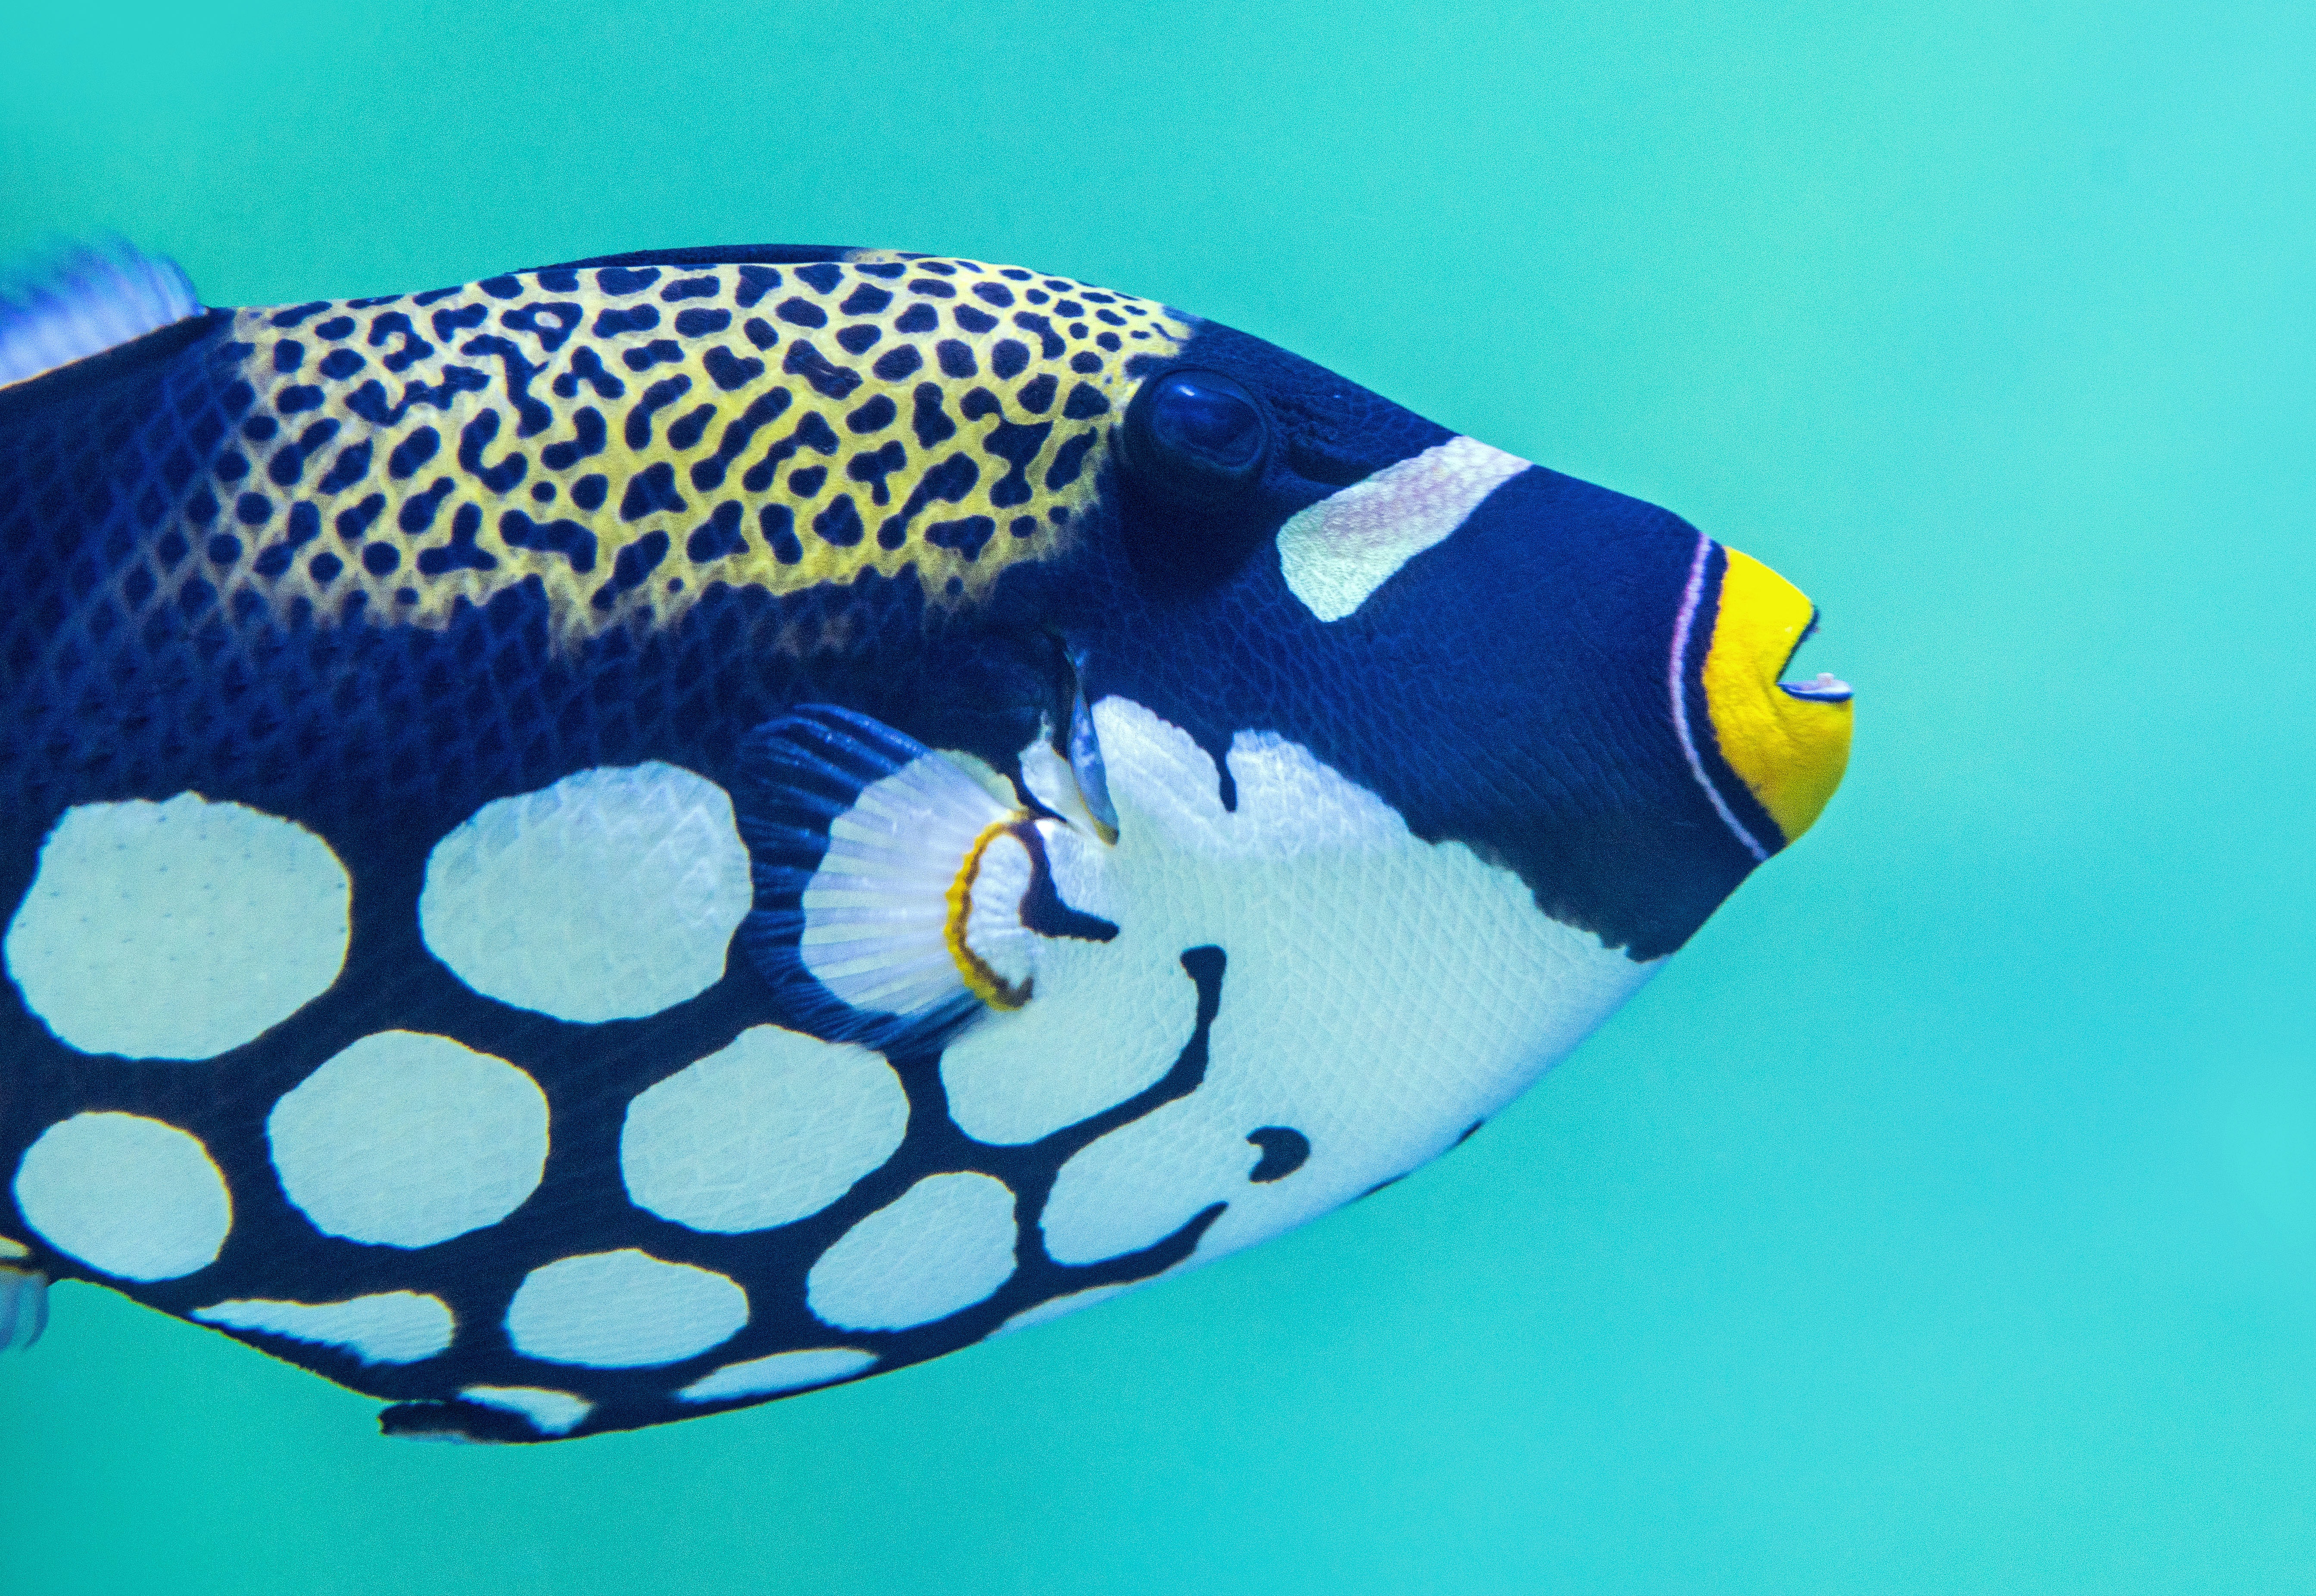 blue and white tang fish